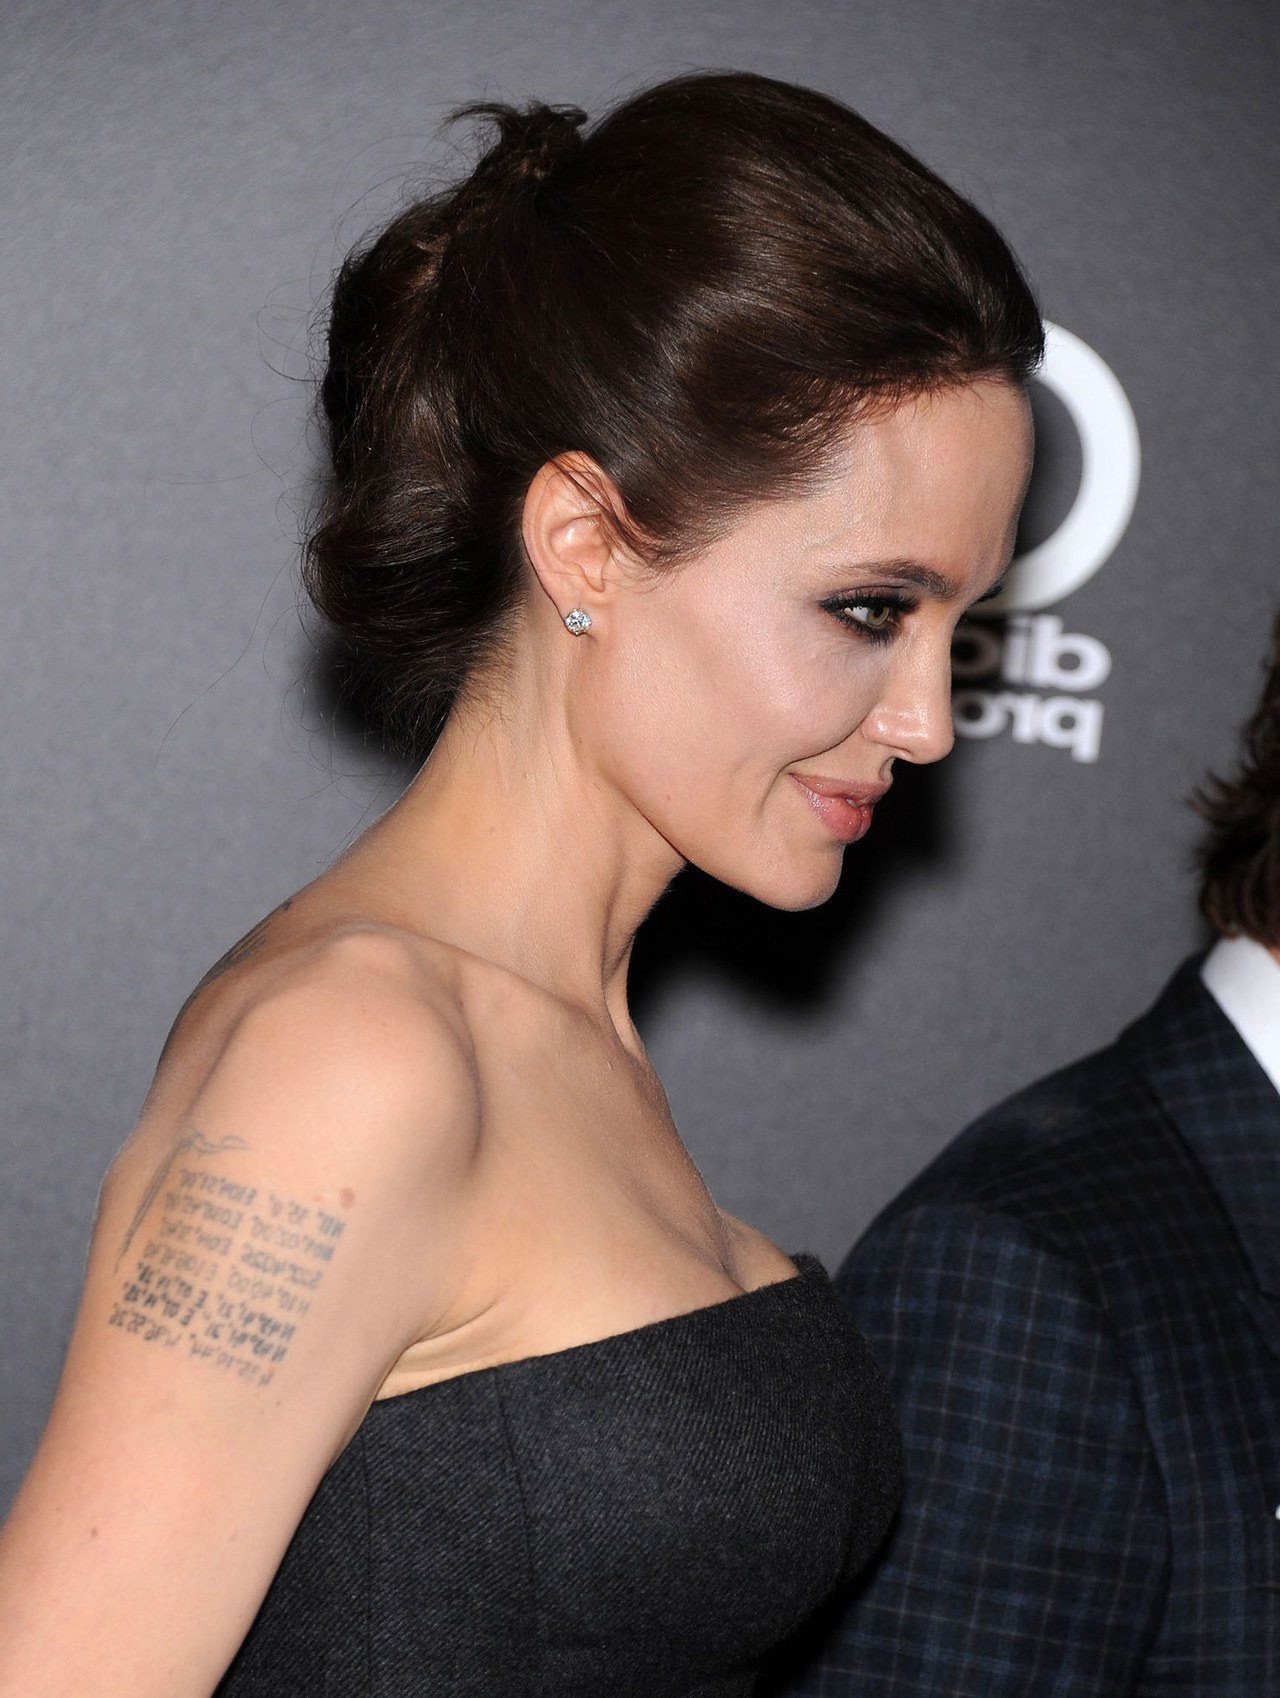 Angelina Jolie And Kate Middleton: Hairstyle Twins With Similar With Regard To Angelina Jolie Short Hairstyles (View 20 of 25)